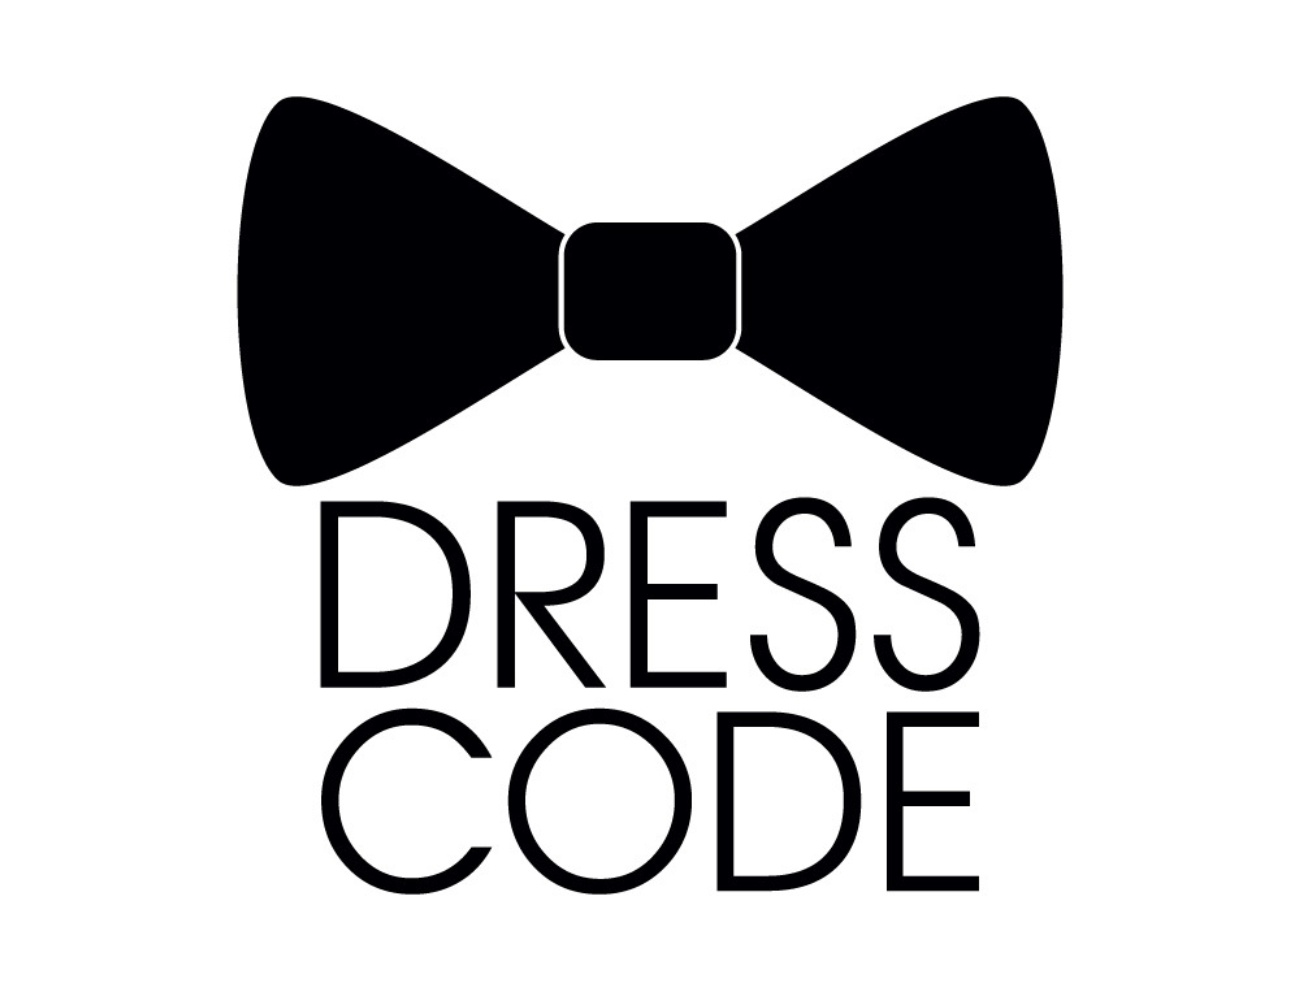 'Dress Code' written under a black bowtie.